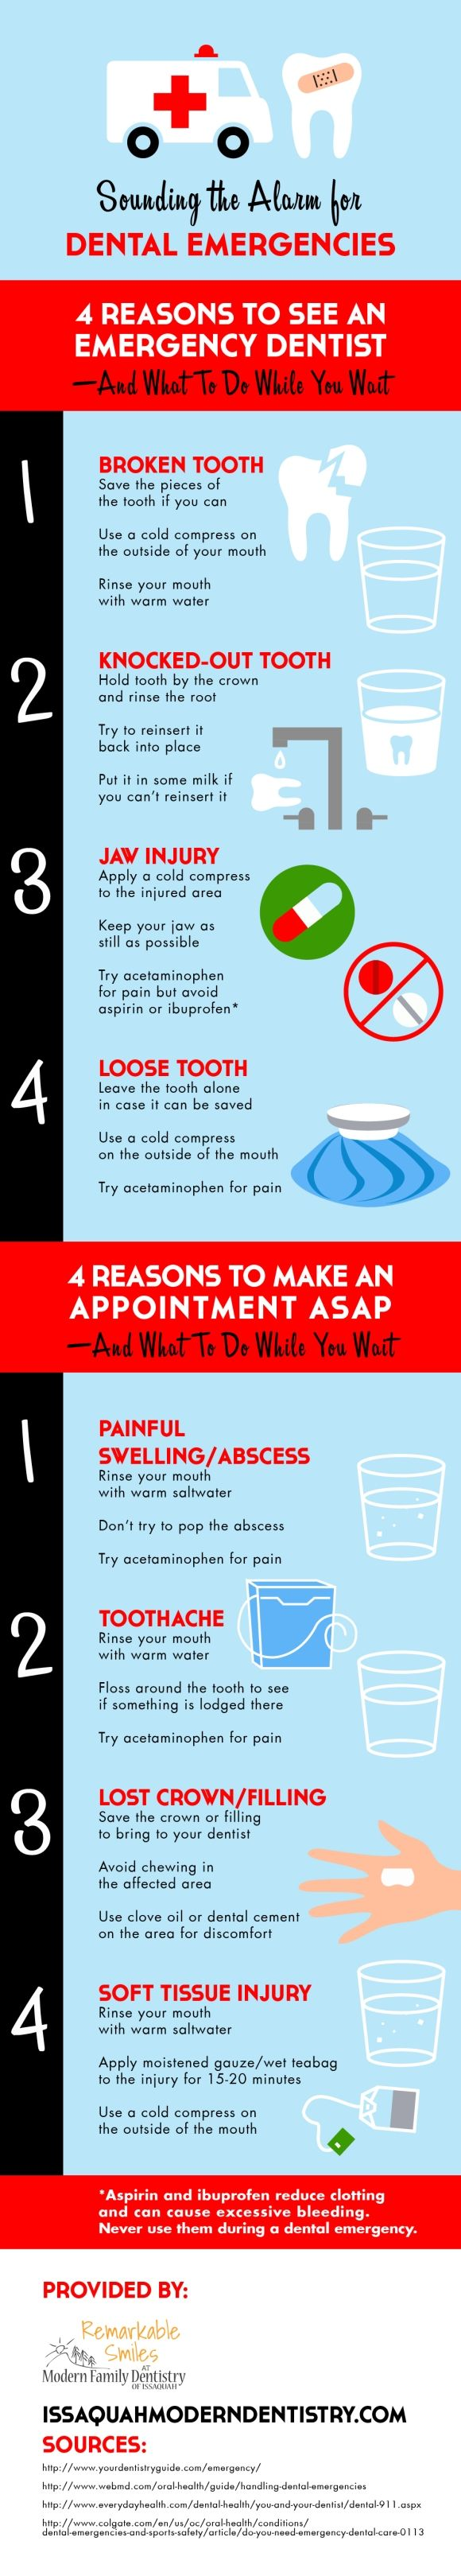 best images about dental infographics sedation a broken loose or knocked out tooth can very well warrant a trip to